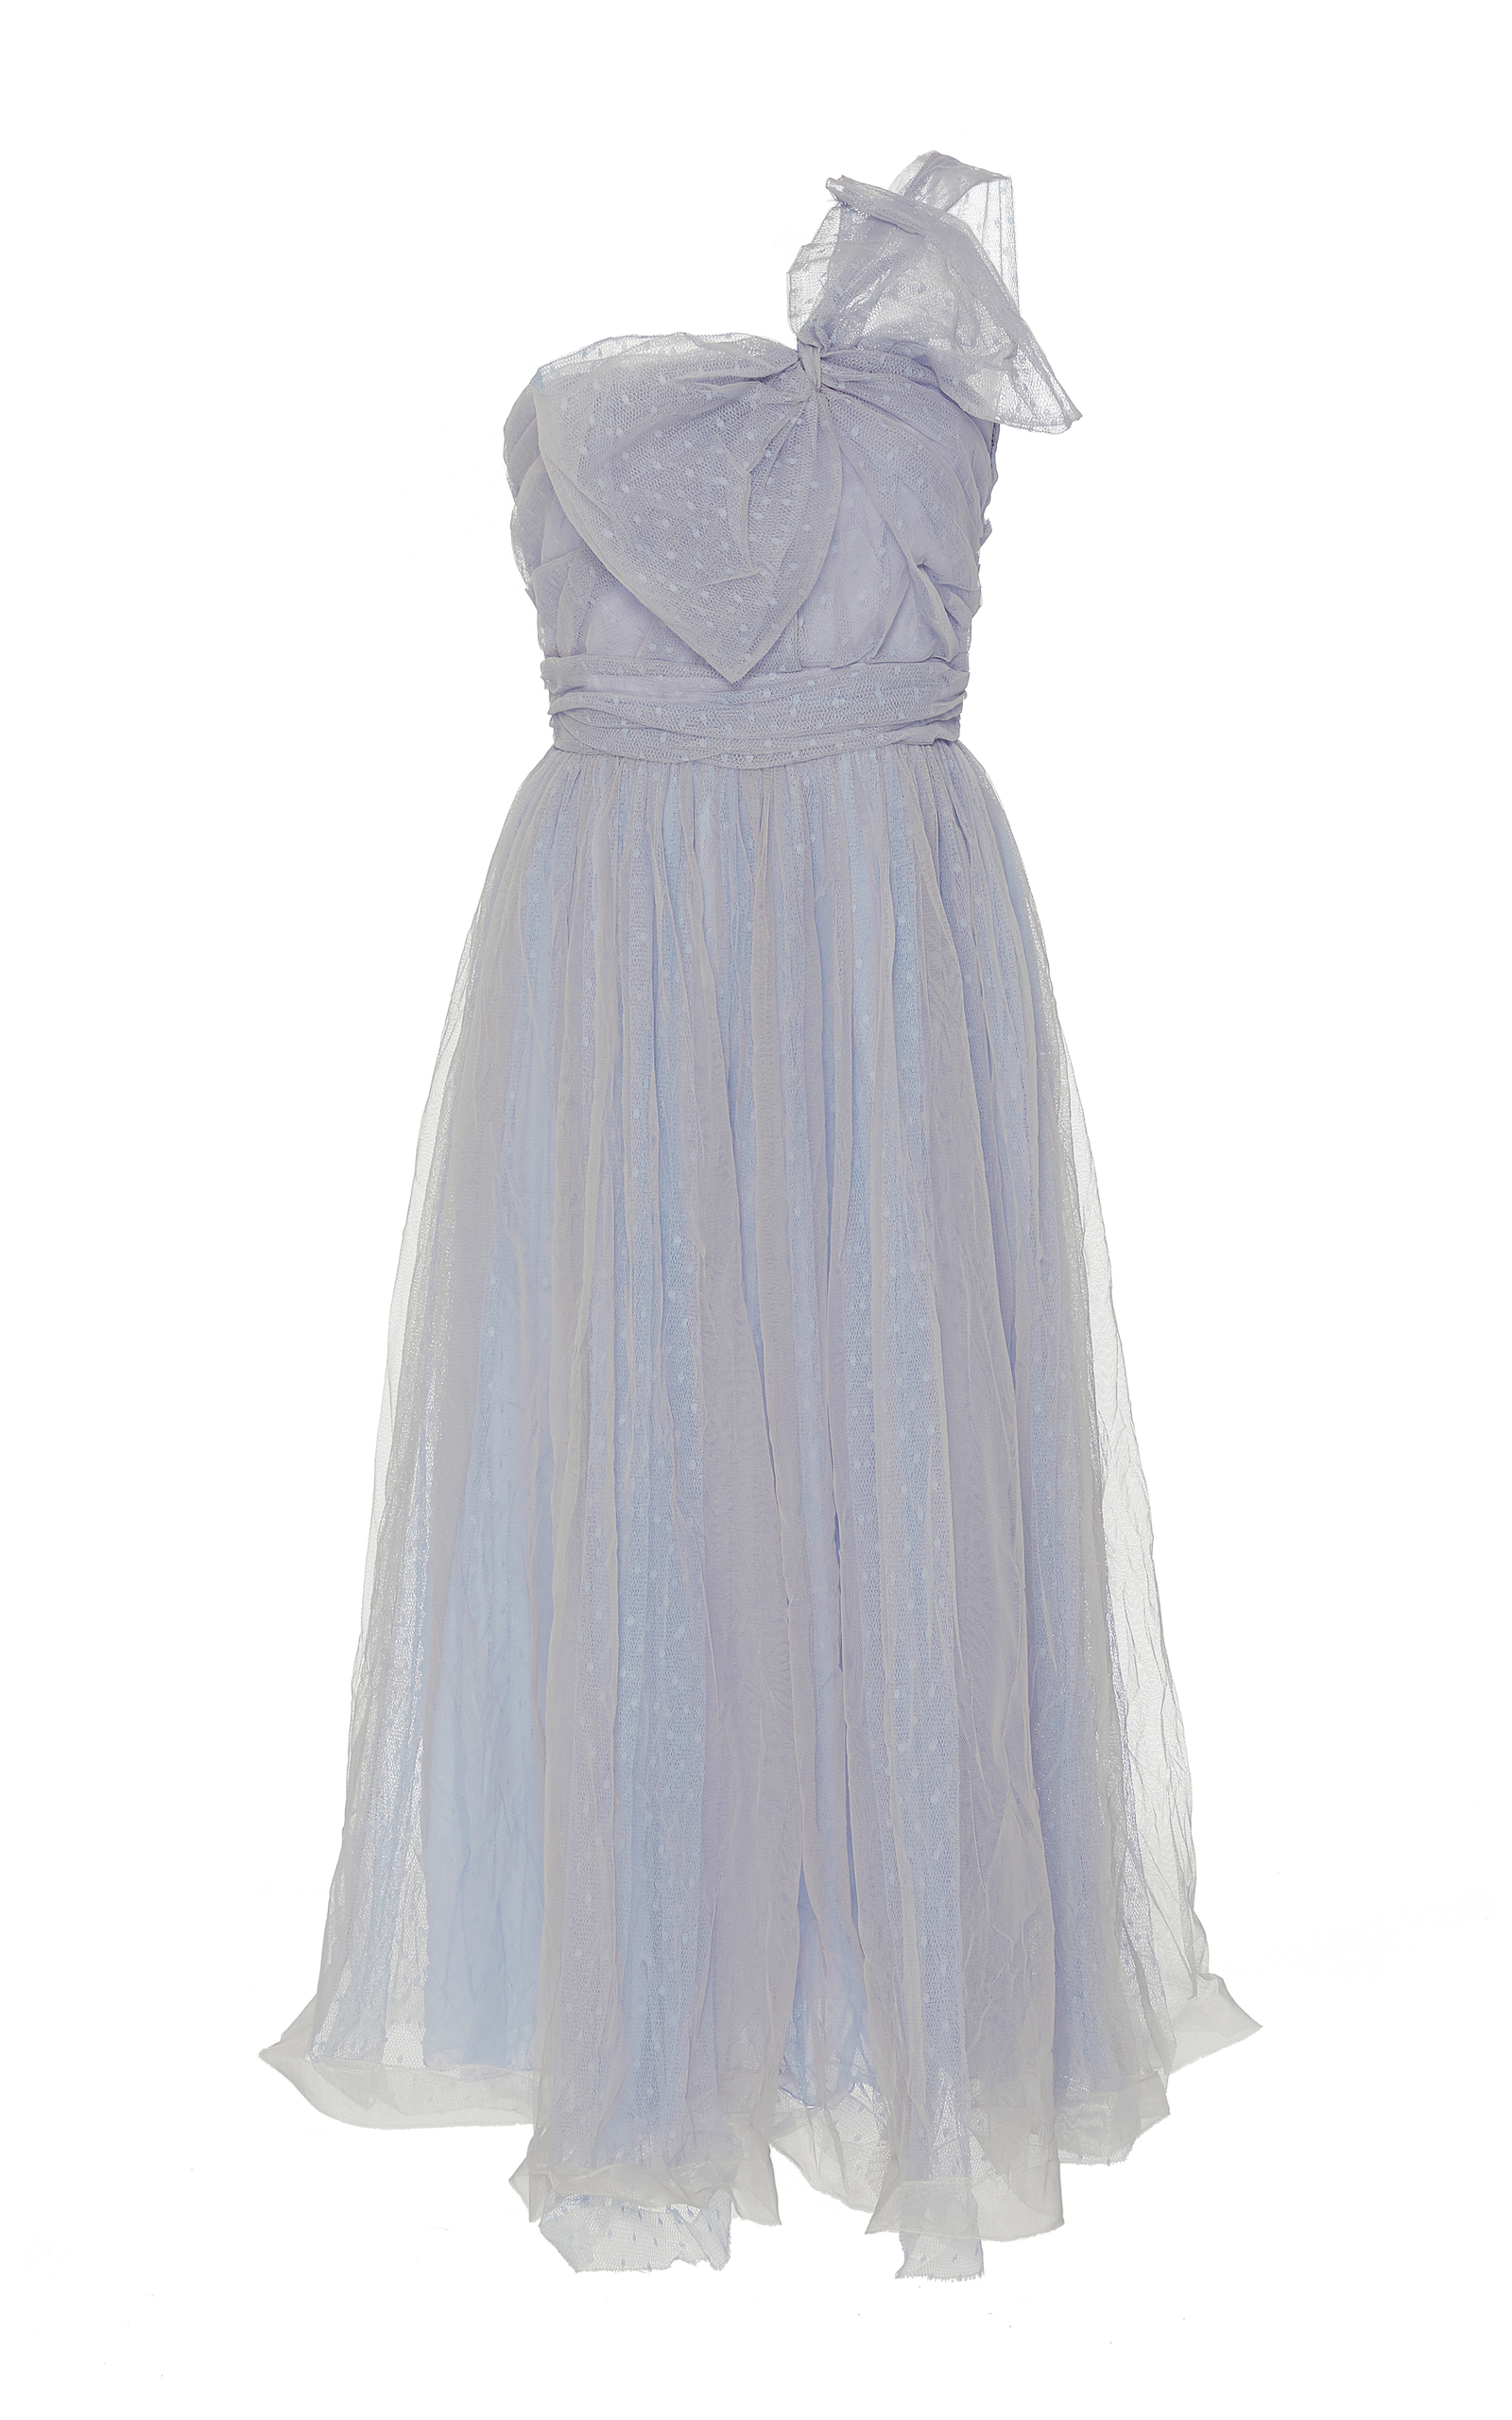 790bc0d8d3 One Shoulder Pressed Wrinkles Point D'Esprit And Tulle Dress by Red ...